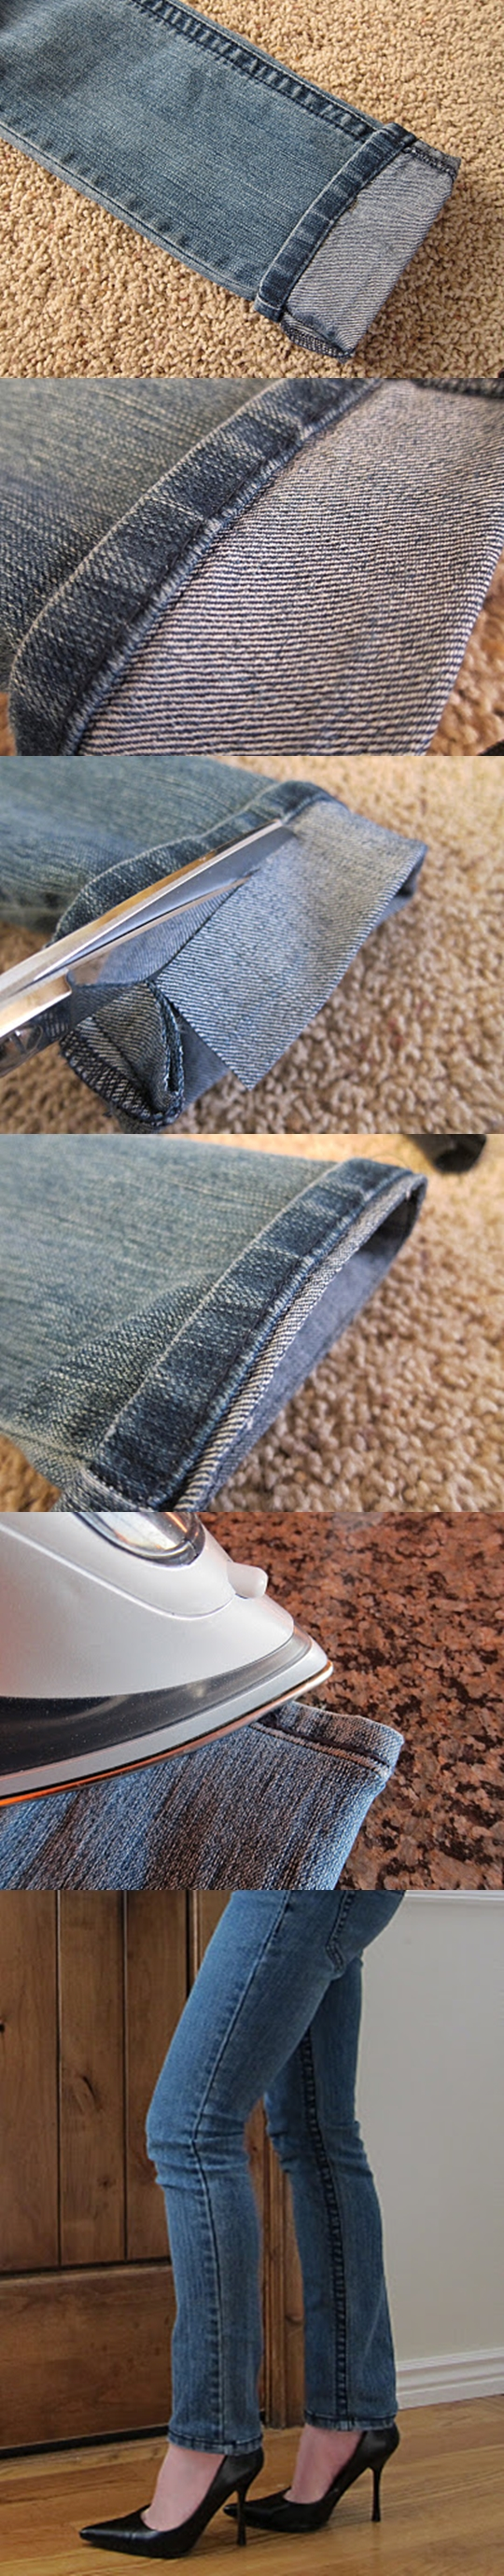 Hem Jeans M Wonderful DIY Shorten Long Jeans But Keeping The Orignal Hem